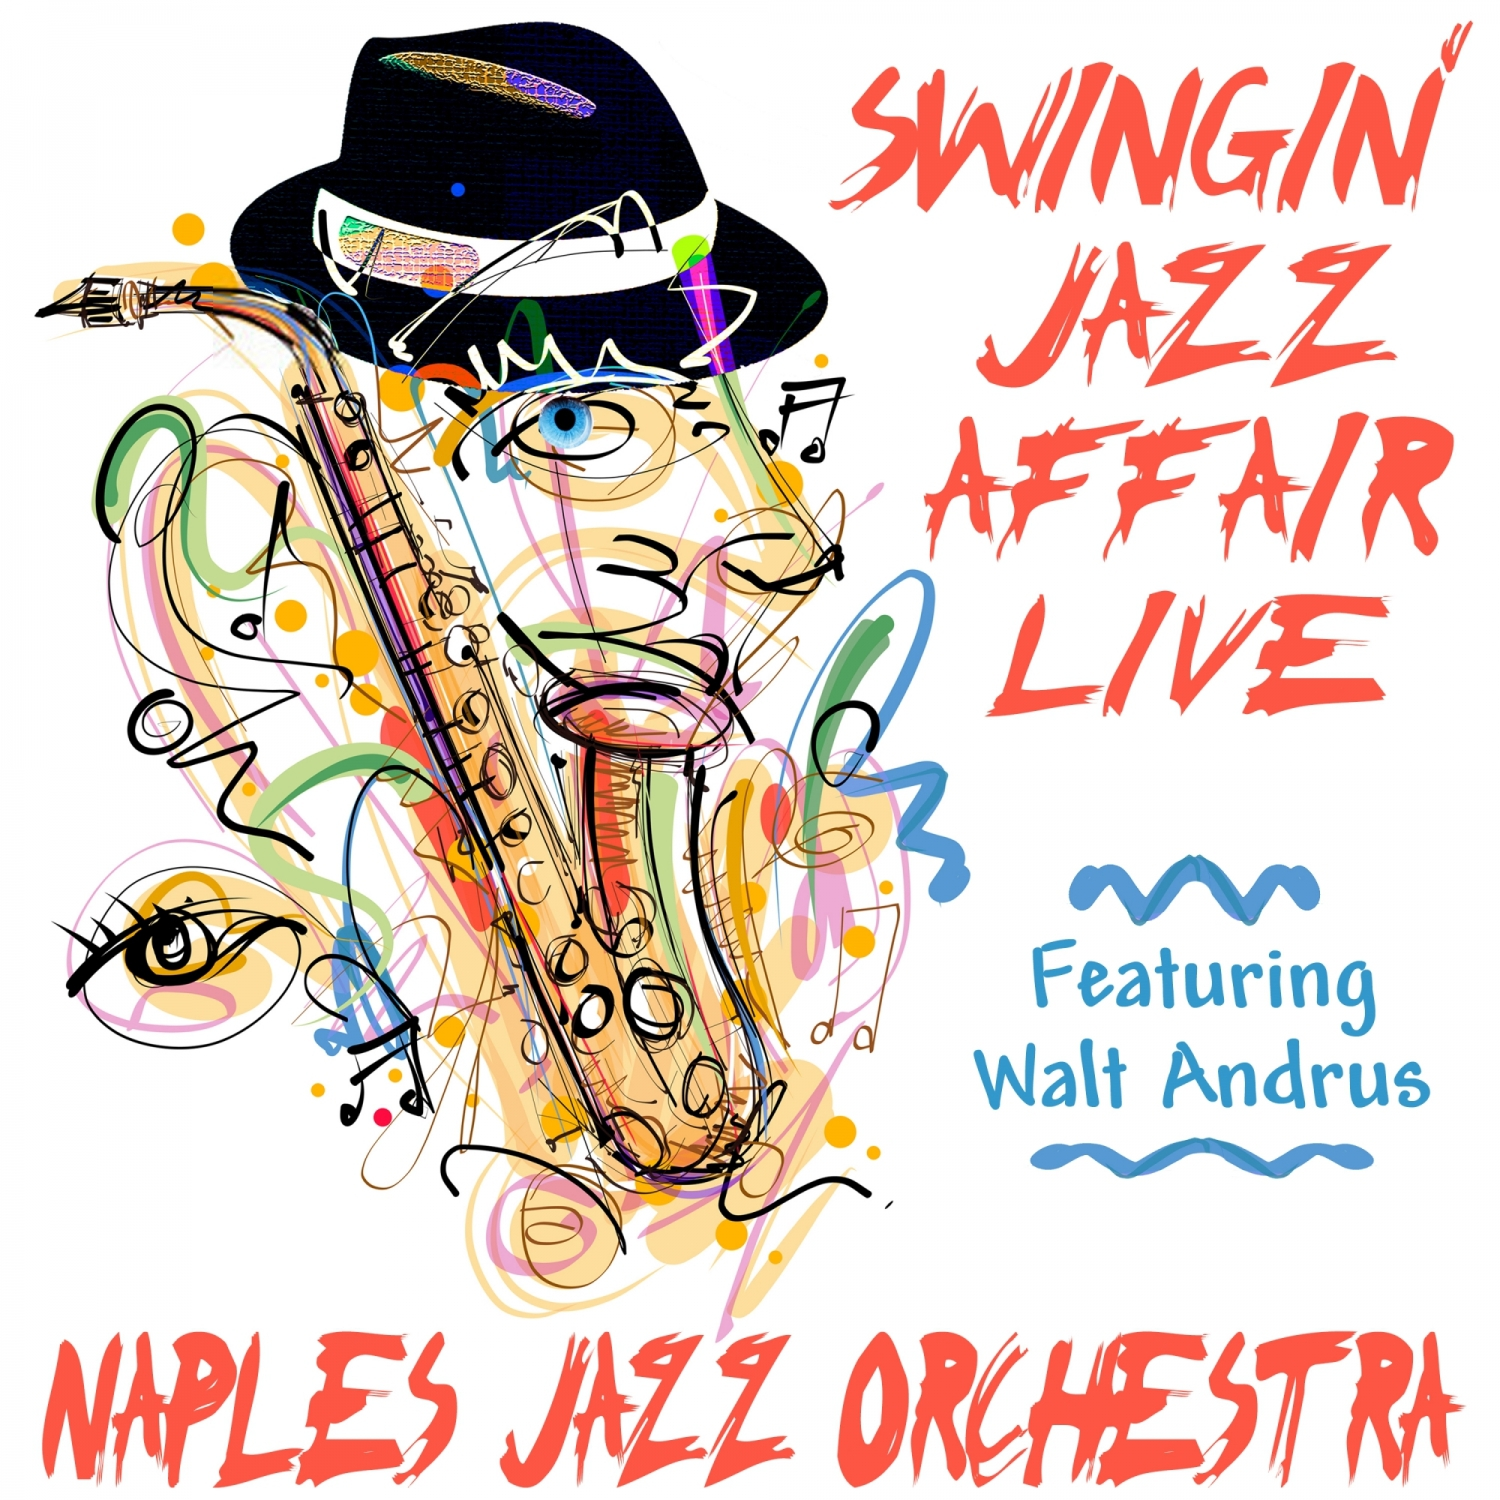 The Naples Jazz Orchestra - A Foggy Day ()